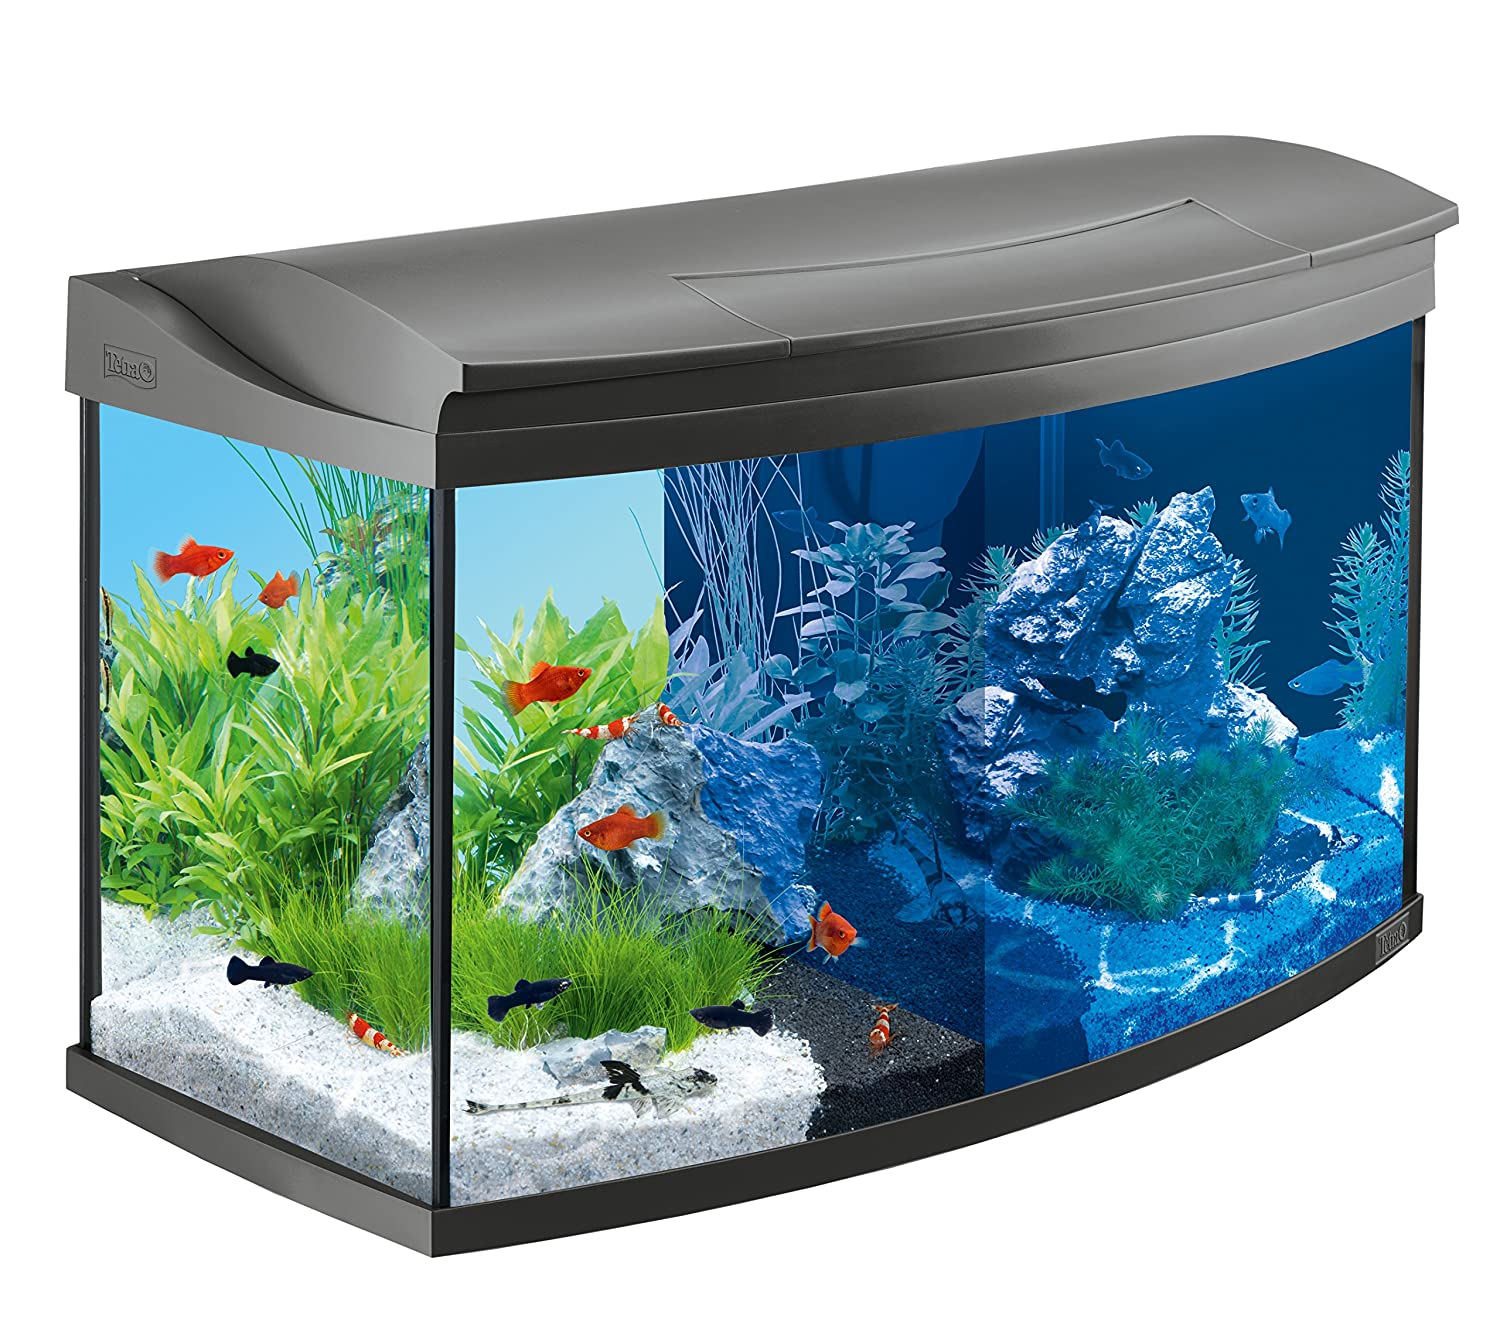 panorama aquarium kaufen fy92 hitoiro. Black Bedroom Furniture Sets. Home Design Ideas